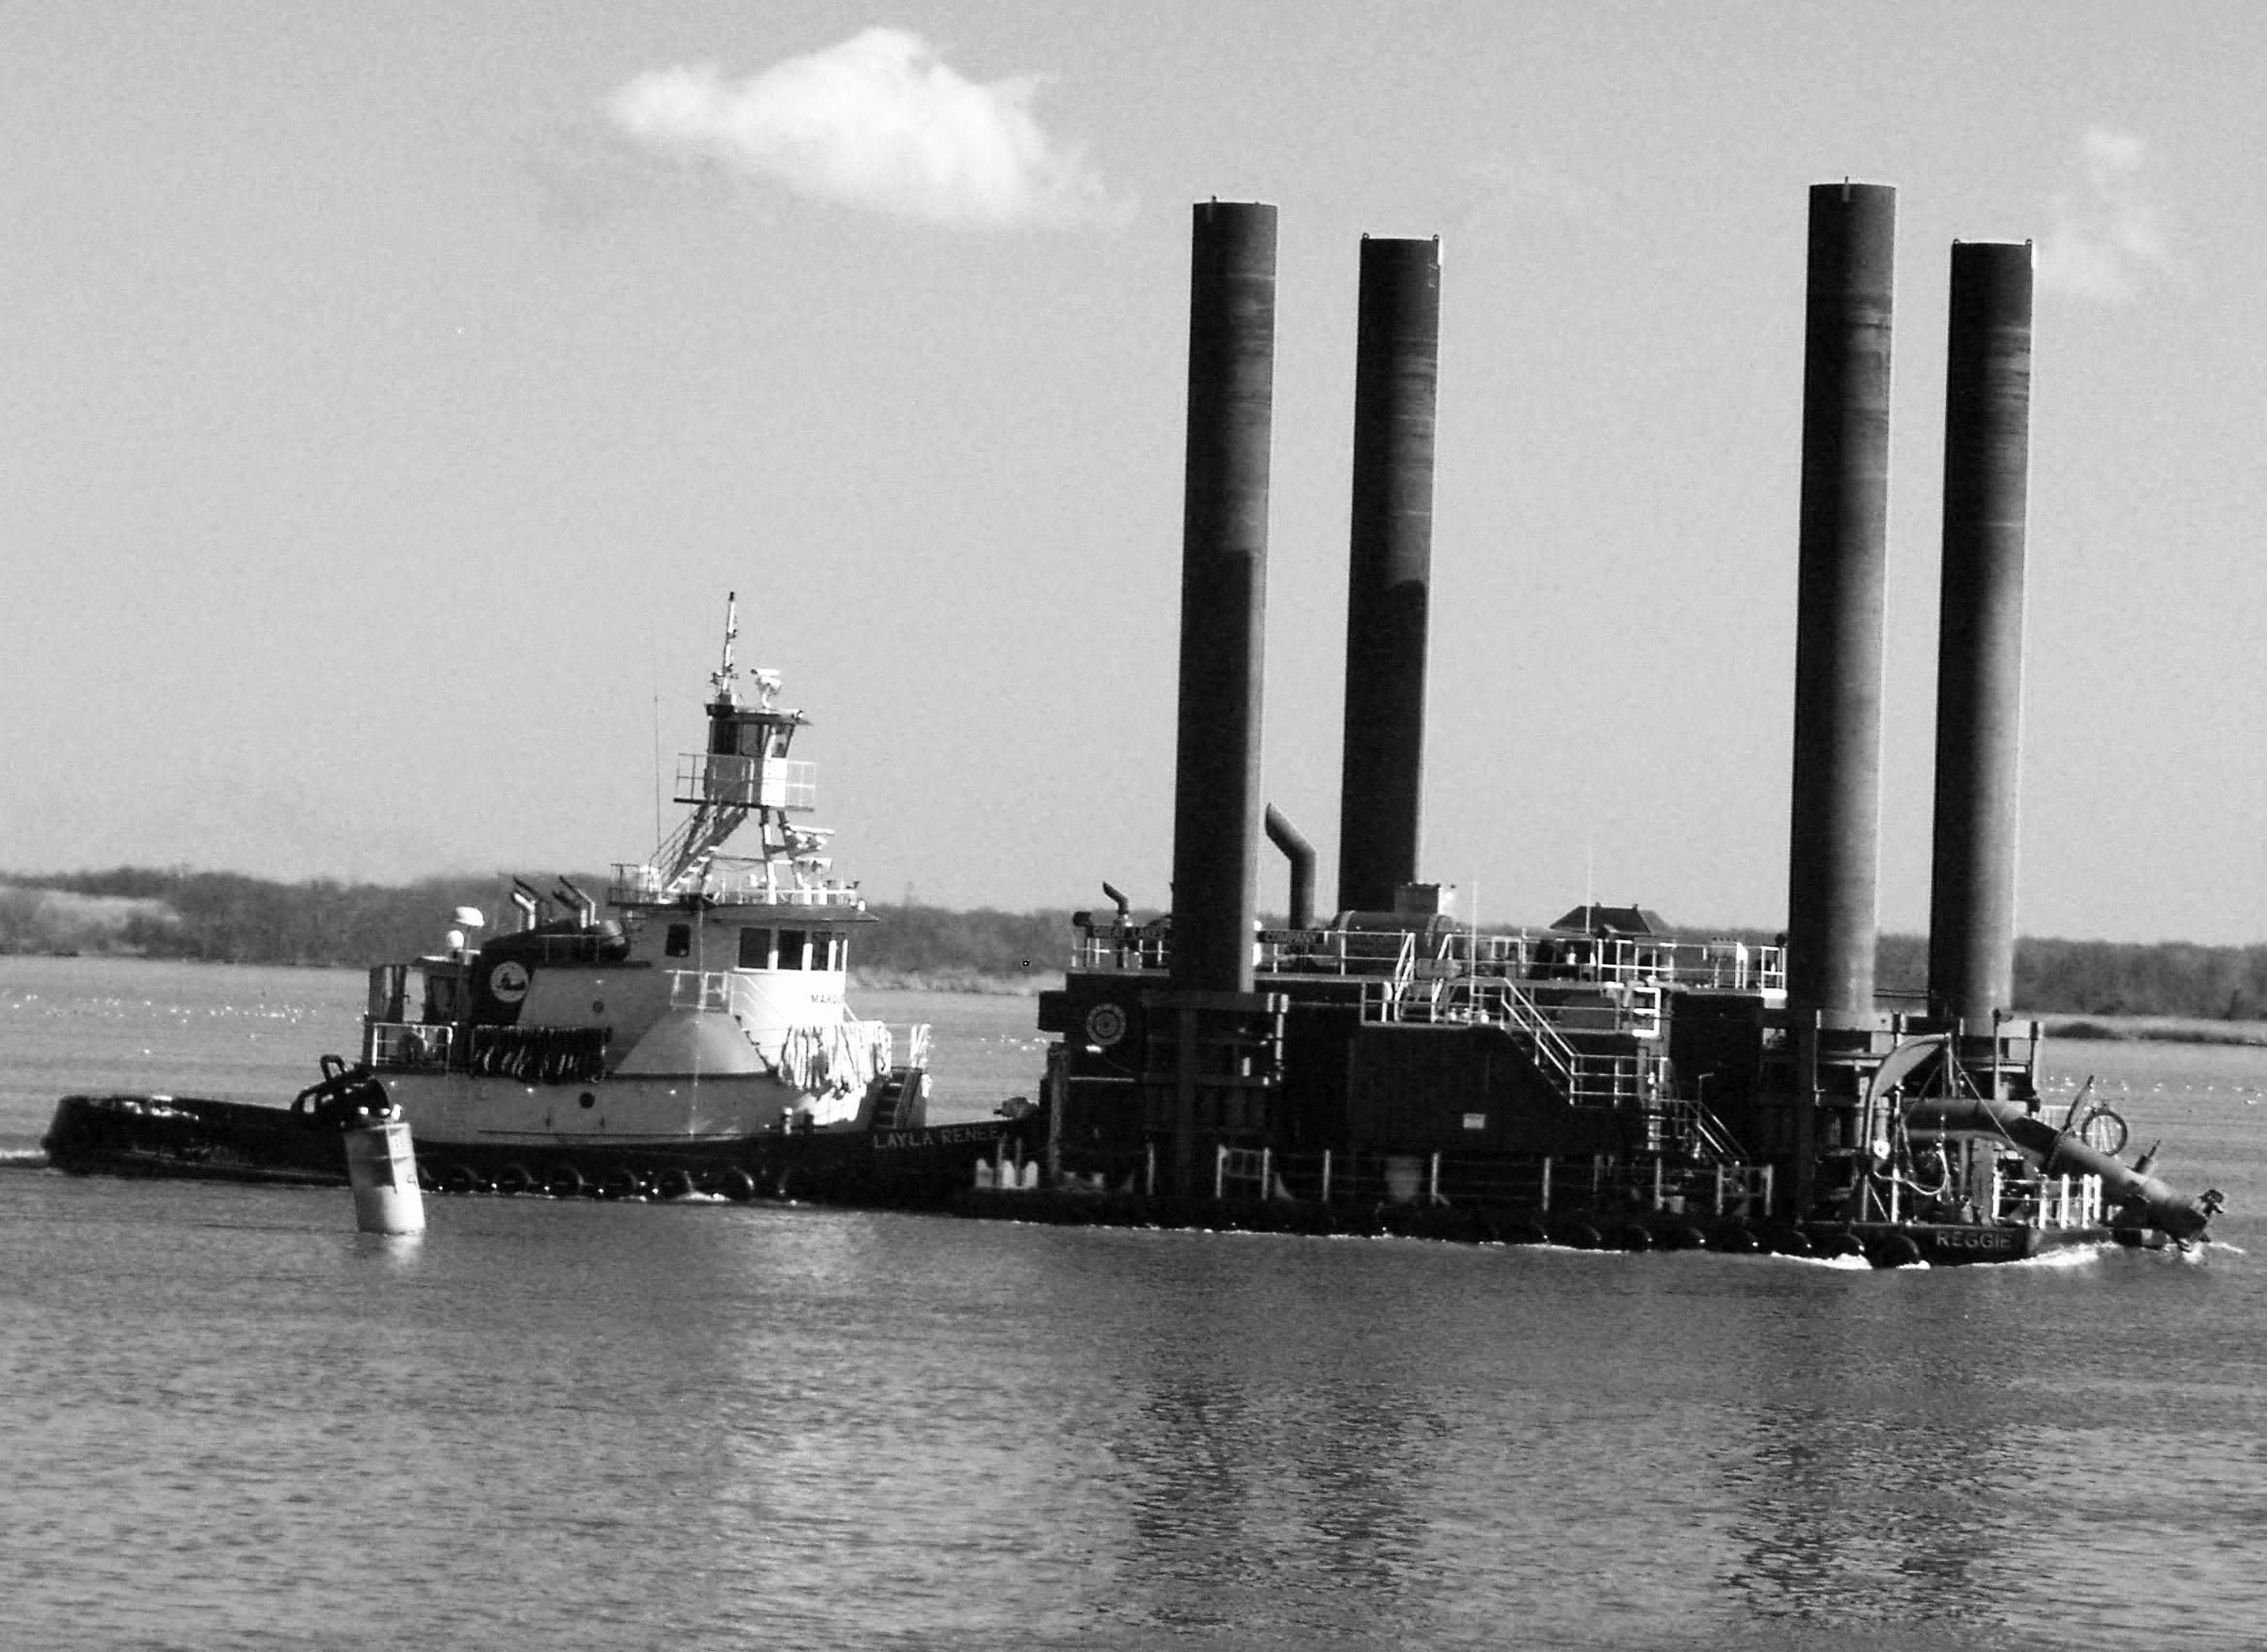 Black & White Of Tug Layla Renee On The Delaware